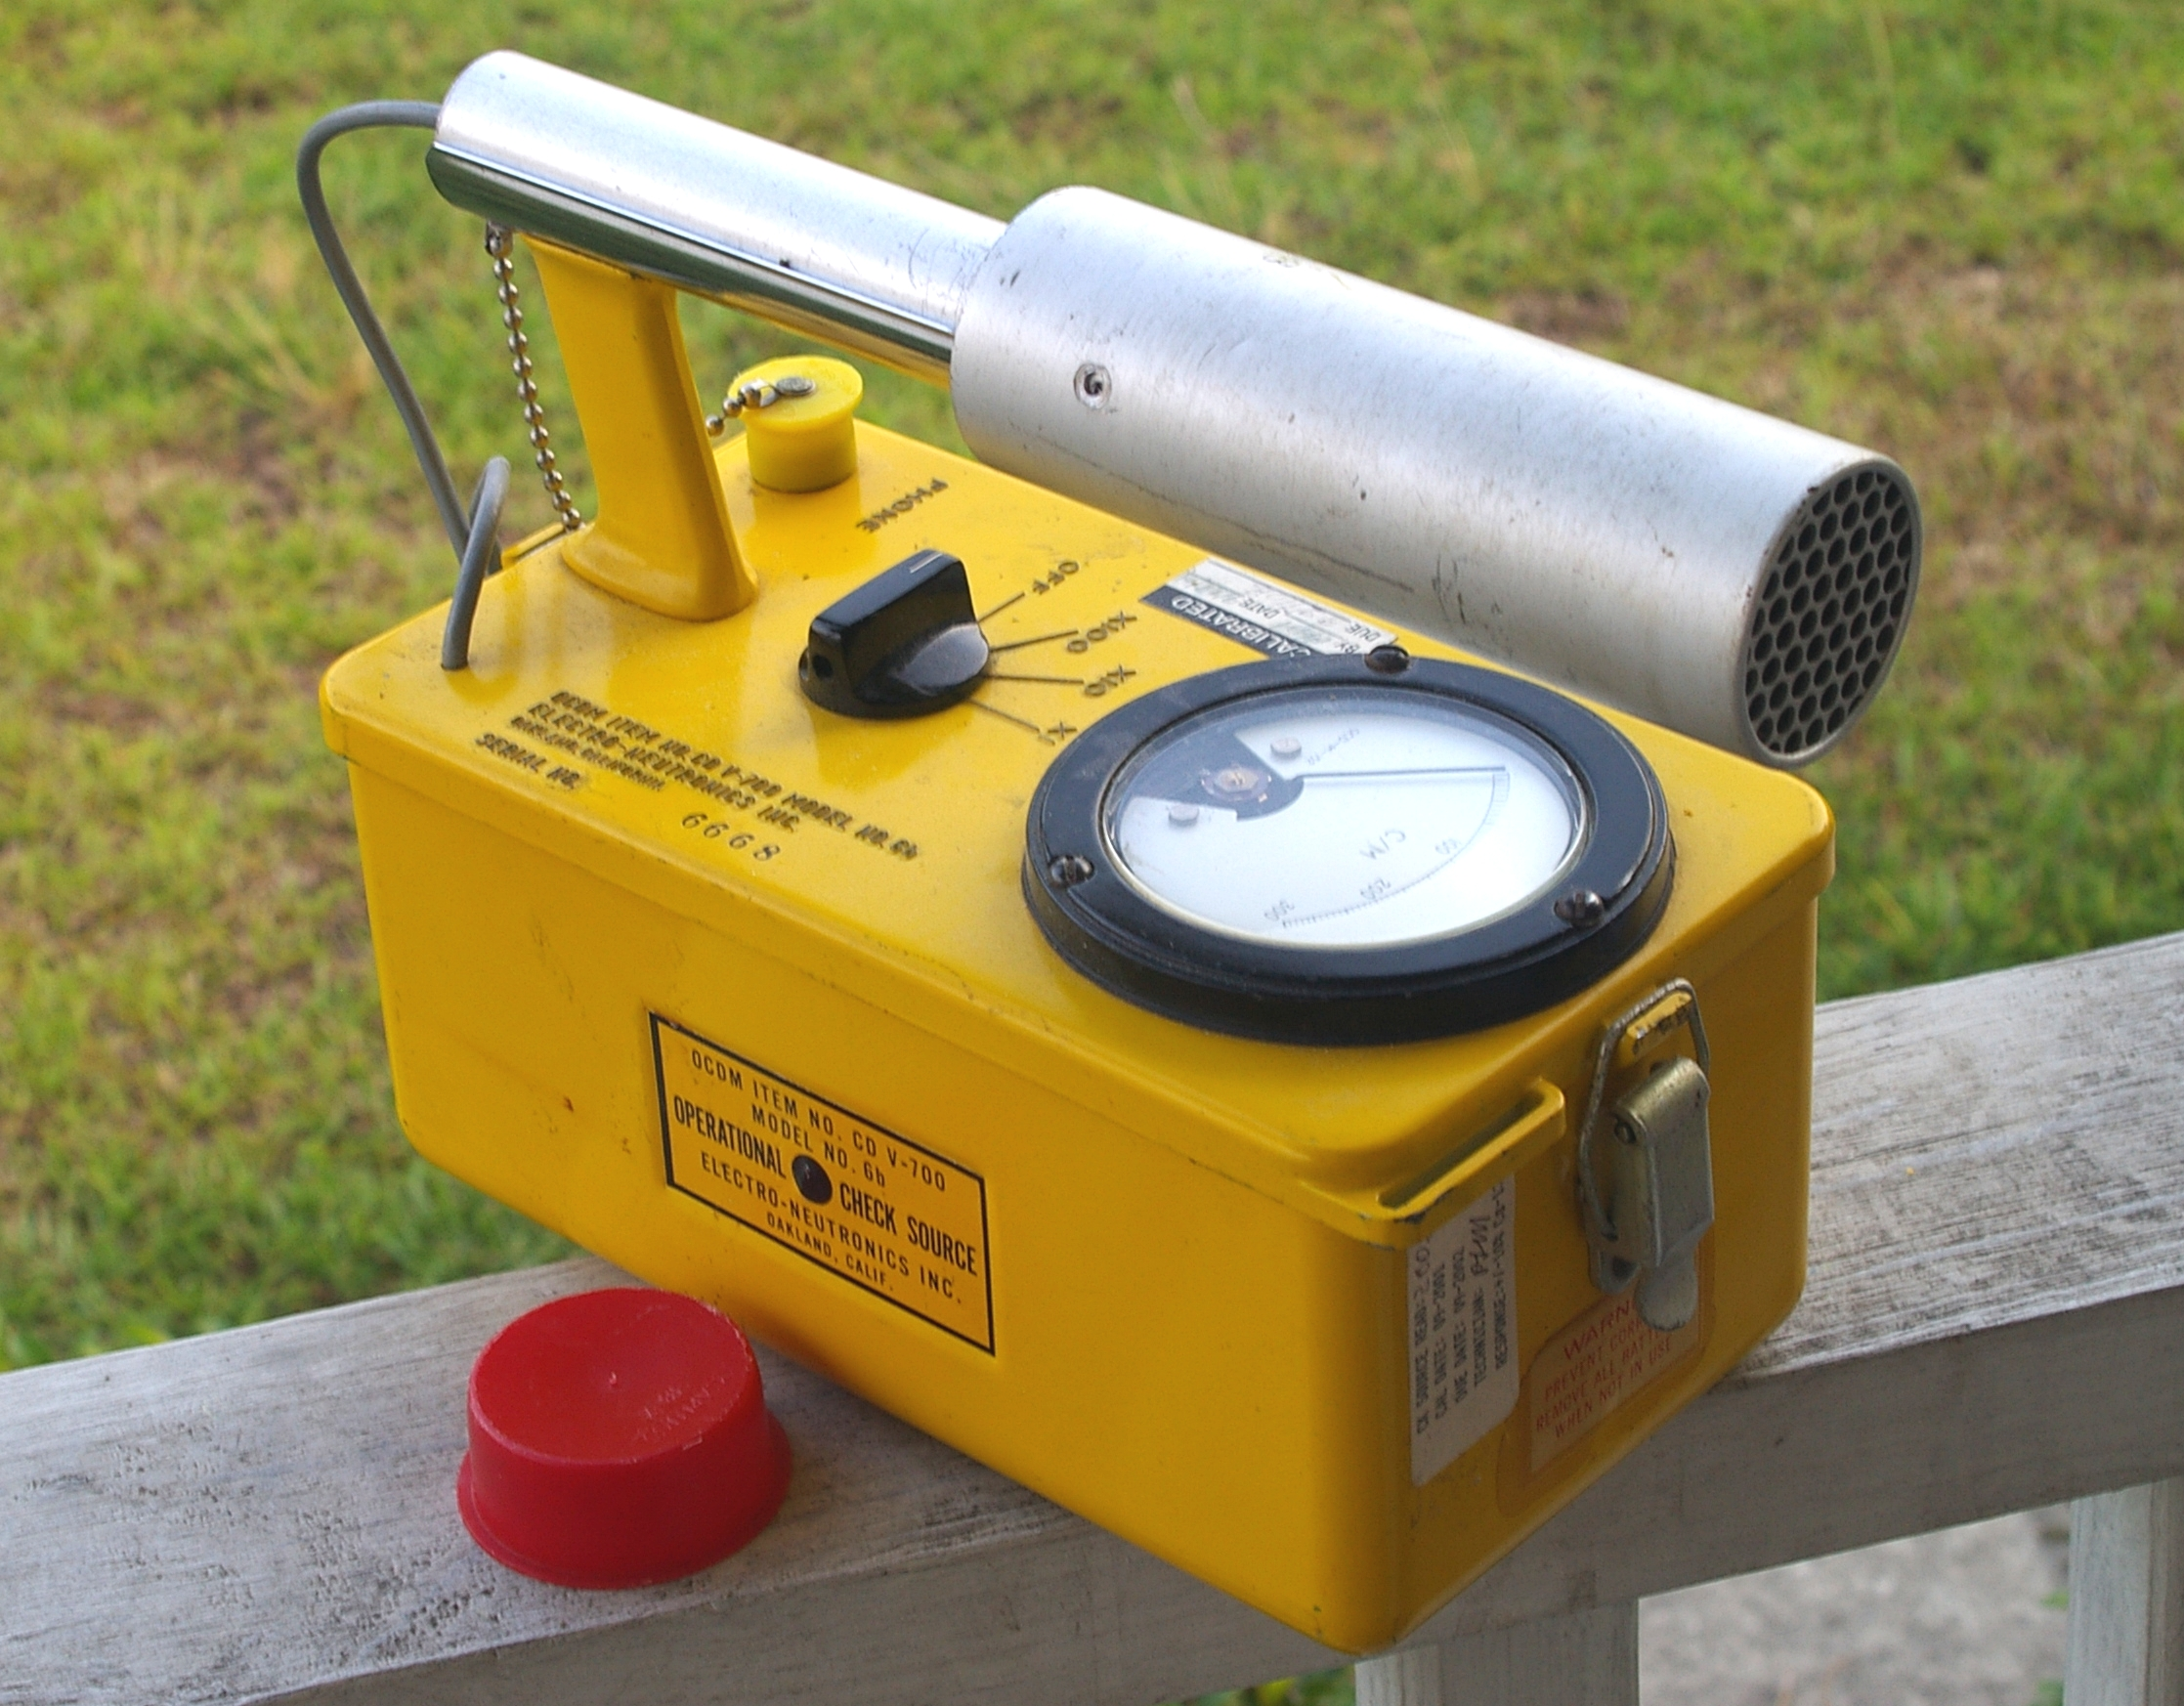 Opinions on geiger counter